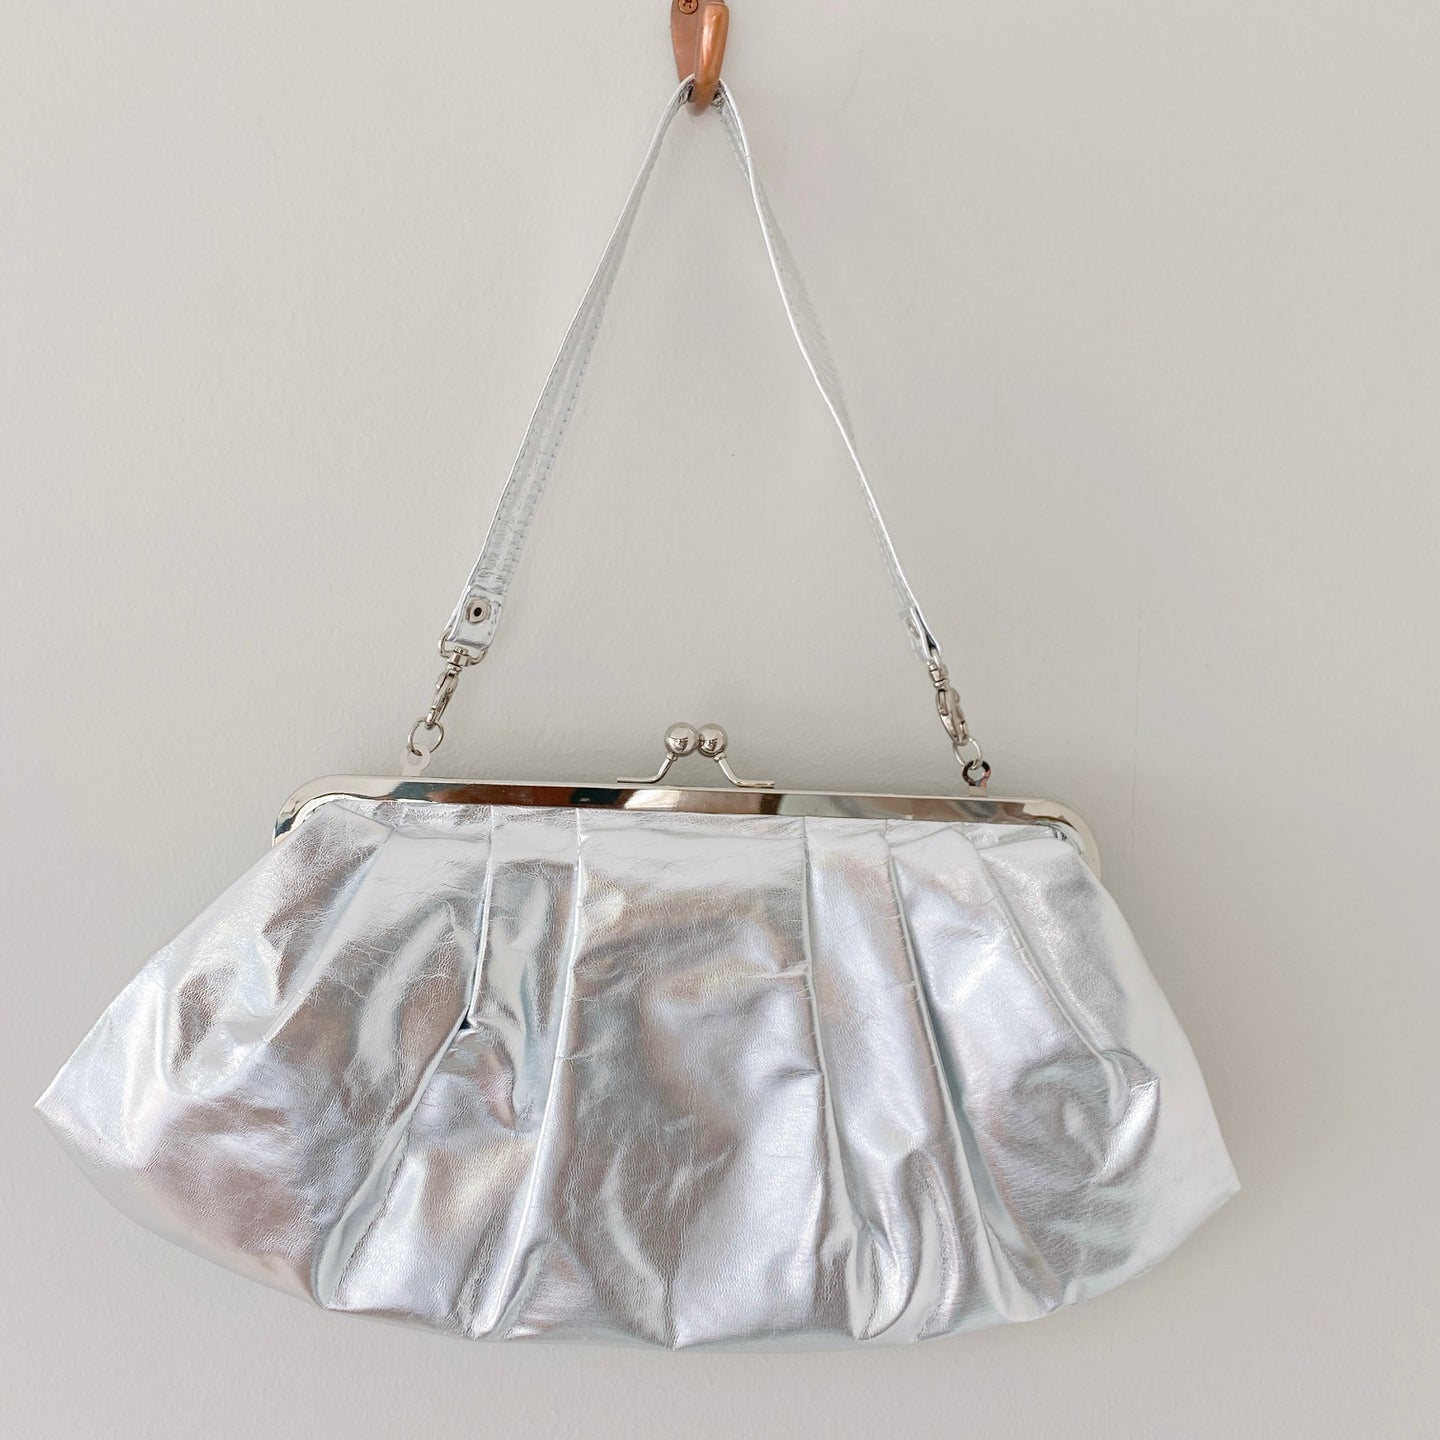 Ruched Clutch in Silver